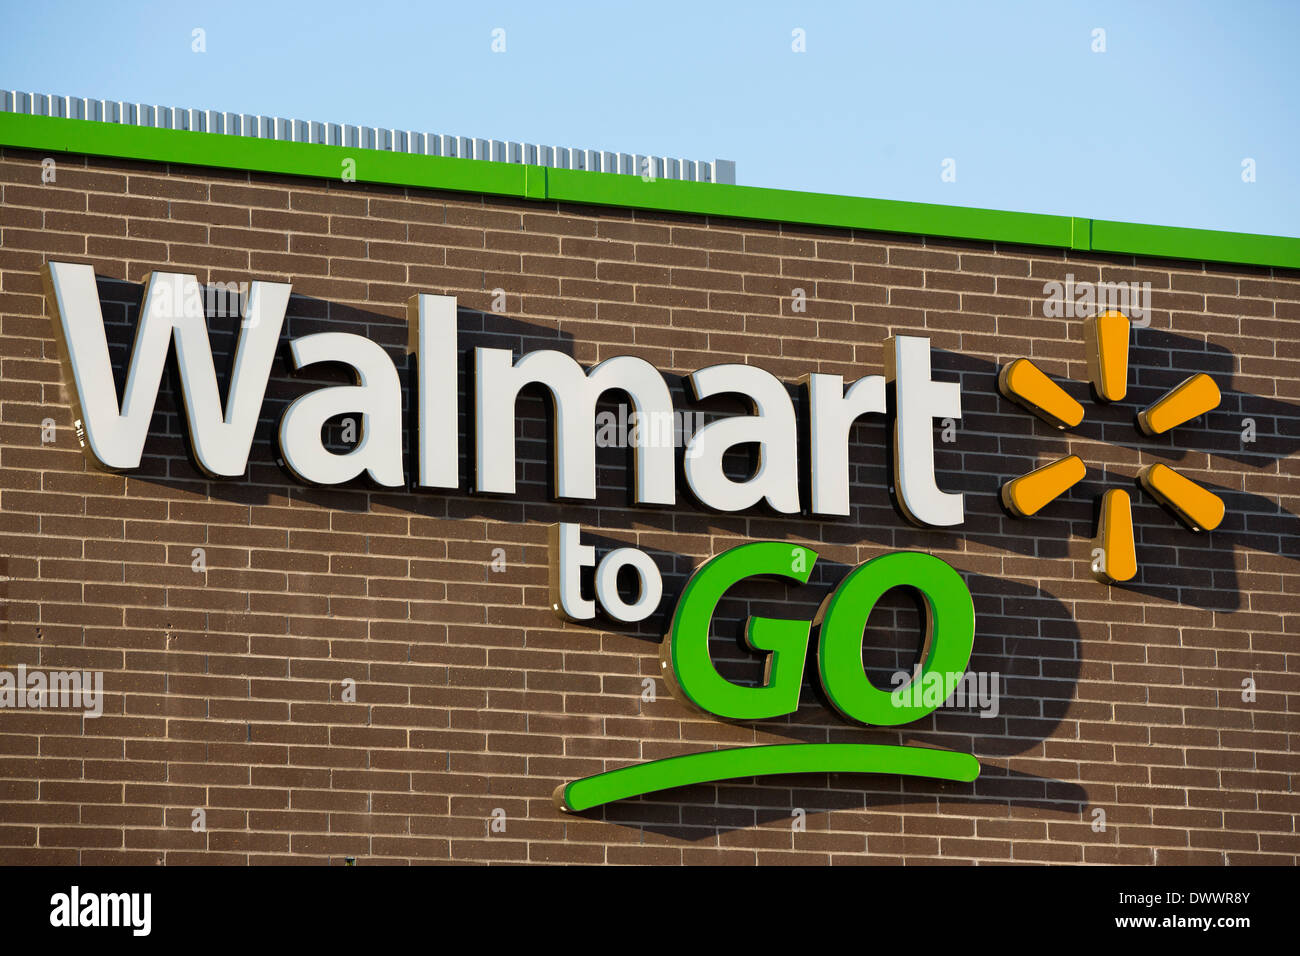 The sign on the outside of the new Walmart To Go concept convenience store in Bentonville, AR, USA. Stock Photo